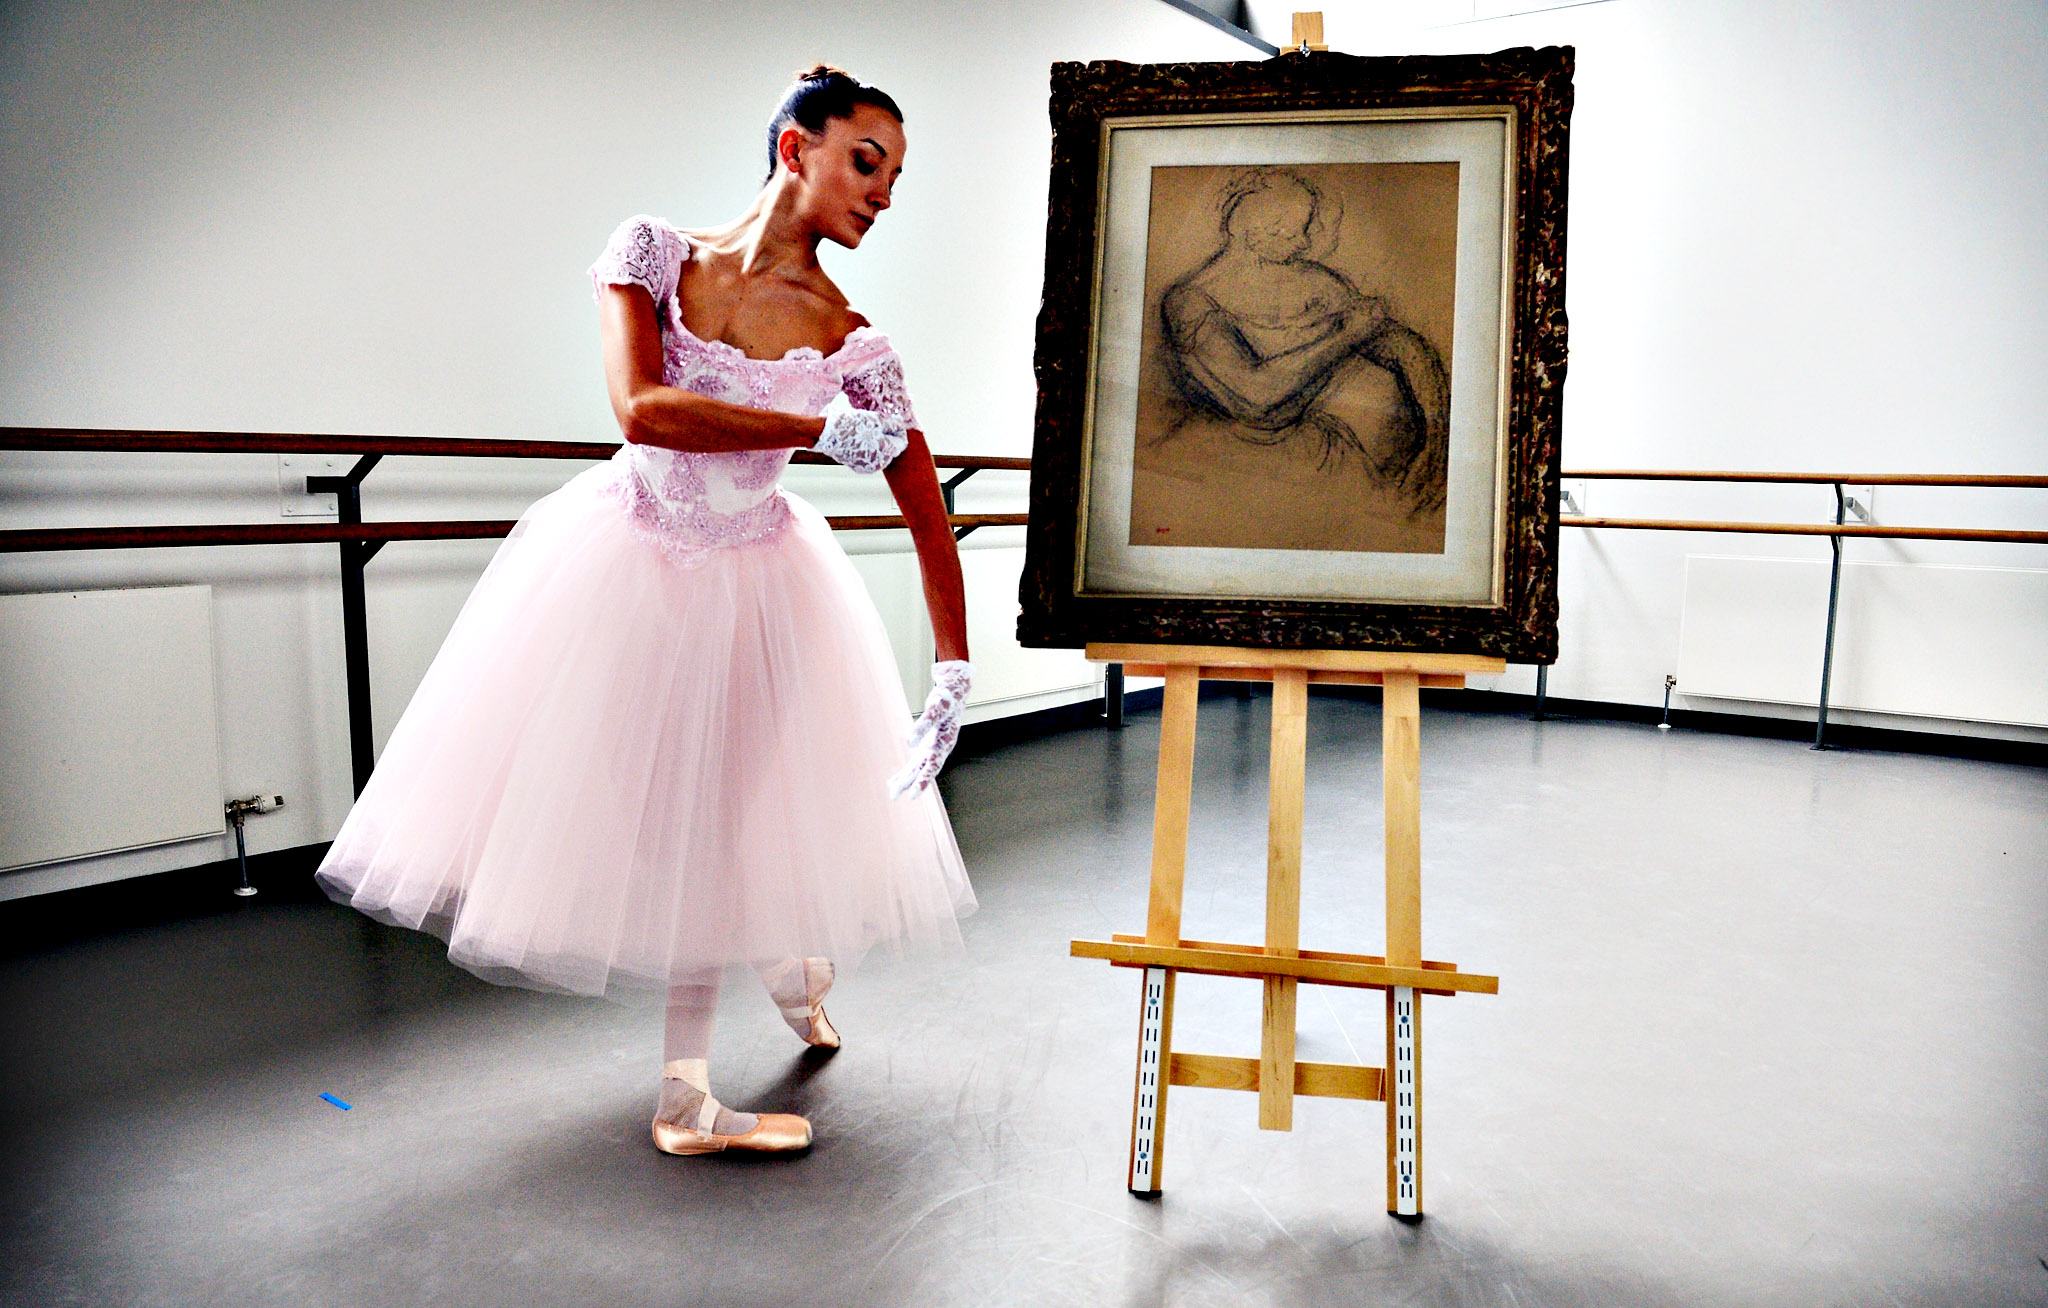 Luciana Ravizzi, a dancer at Scottish Ballet, stands next to a sketch of a ballerina by Edgar Degas, entitled 'Danseuse Rajustant L'Epaulette de Son Corsage' on November 15, 2013 in Glasgow, Scotland. The sketch is to be sold at Lyon and Turnbull fine paintings sale on the November 28, 2013. It is valued at  80,000-120,000 and is part of a collection of paintings belonging to Manchester born Albert Davis.